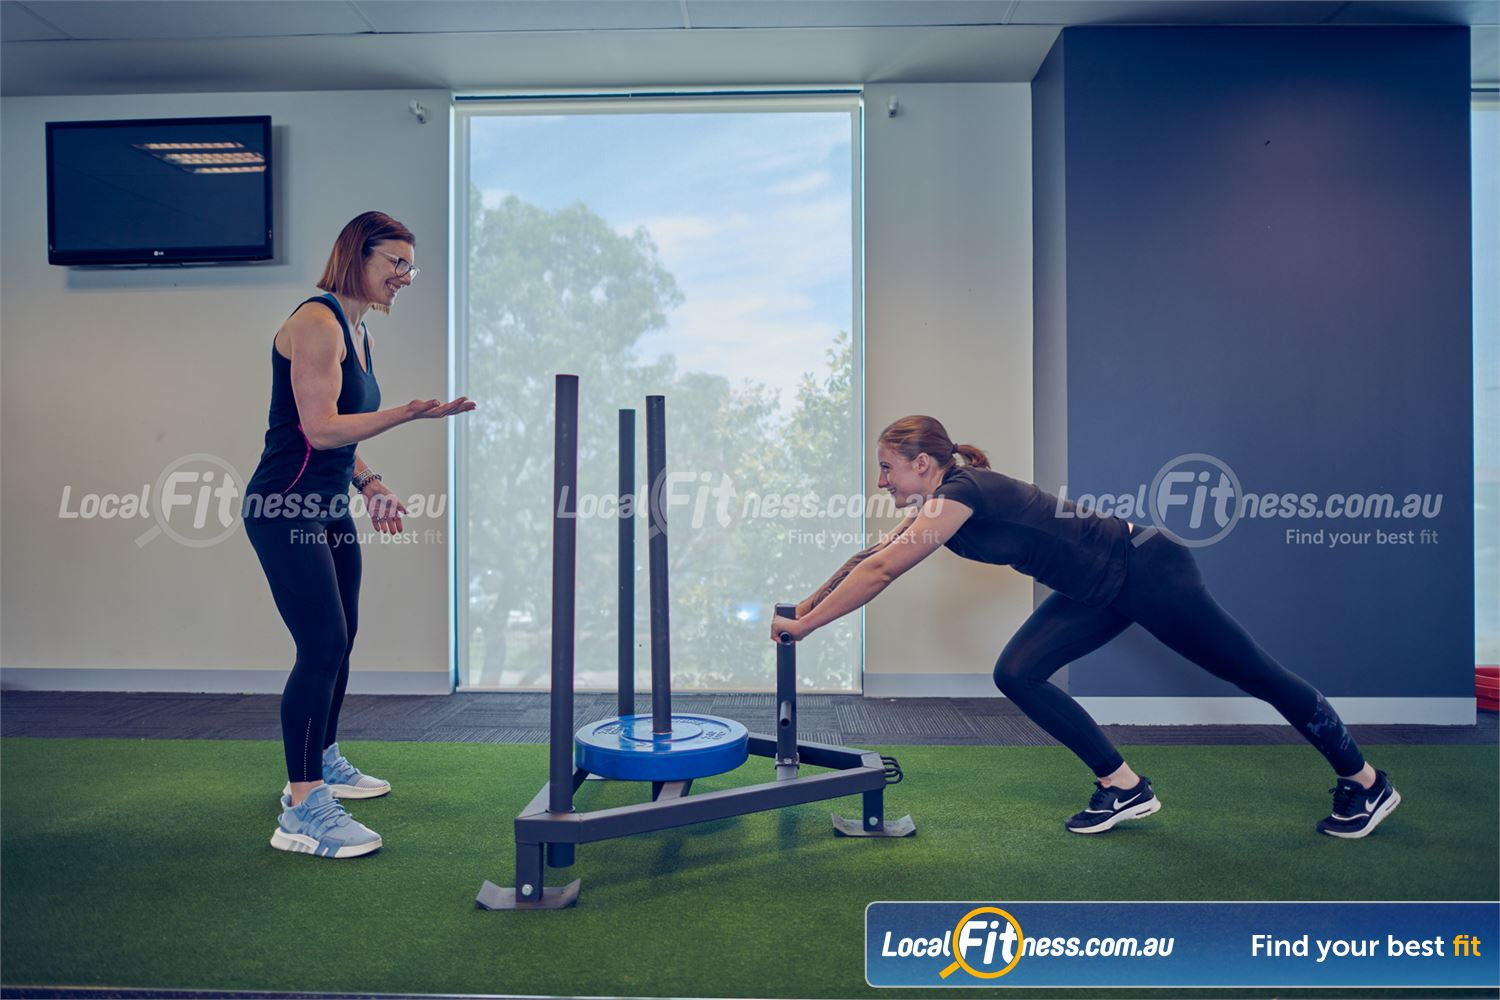 Fernwood Fitness Near Deer Park Get a functional work with sled runs in our Cairnlea HIIT gym.